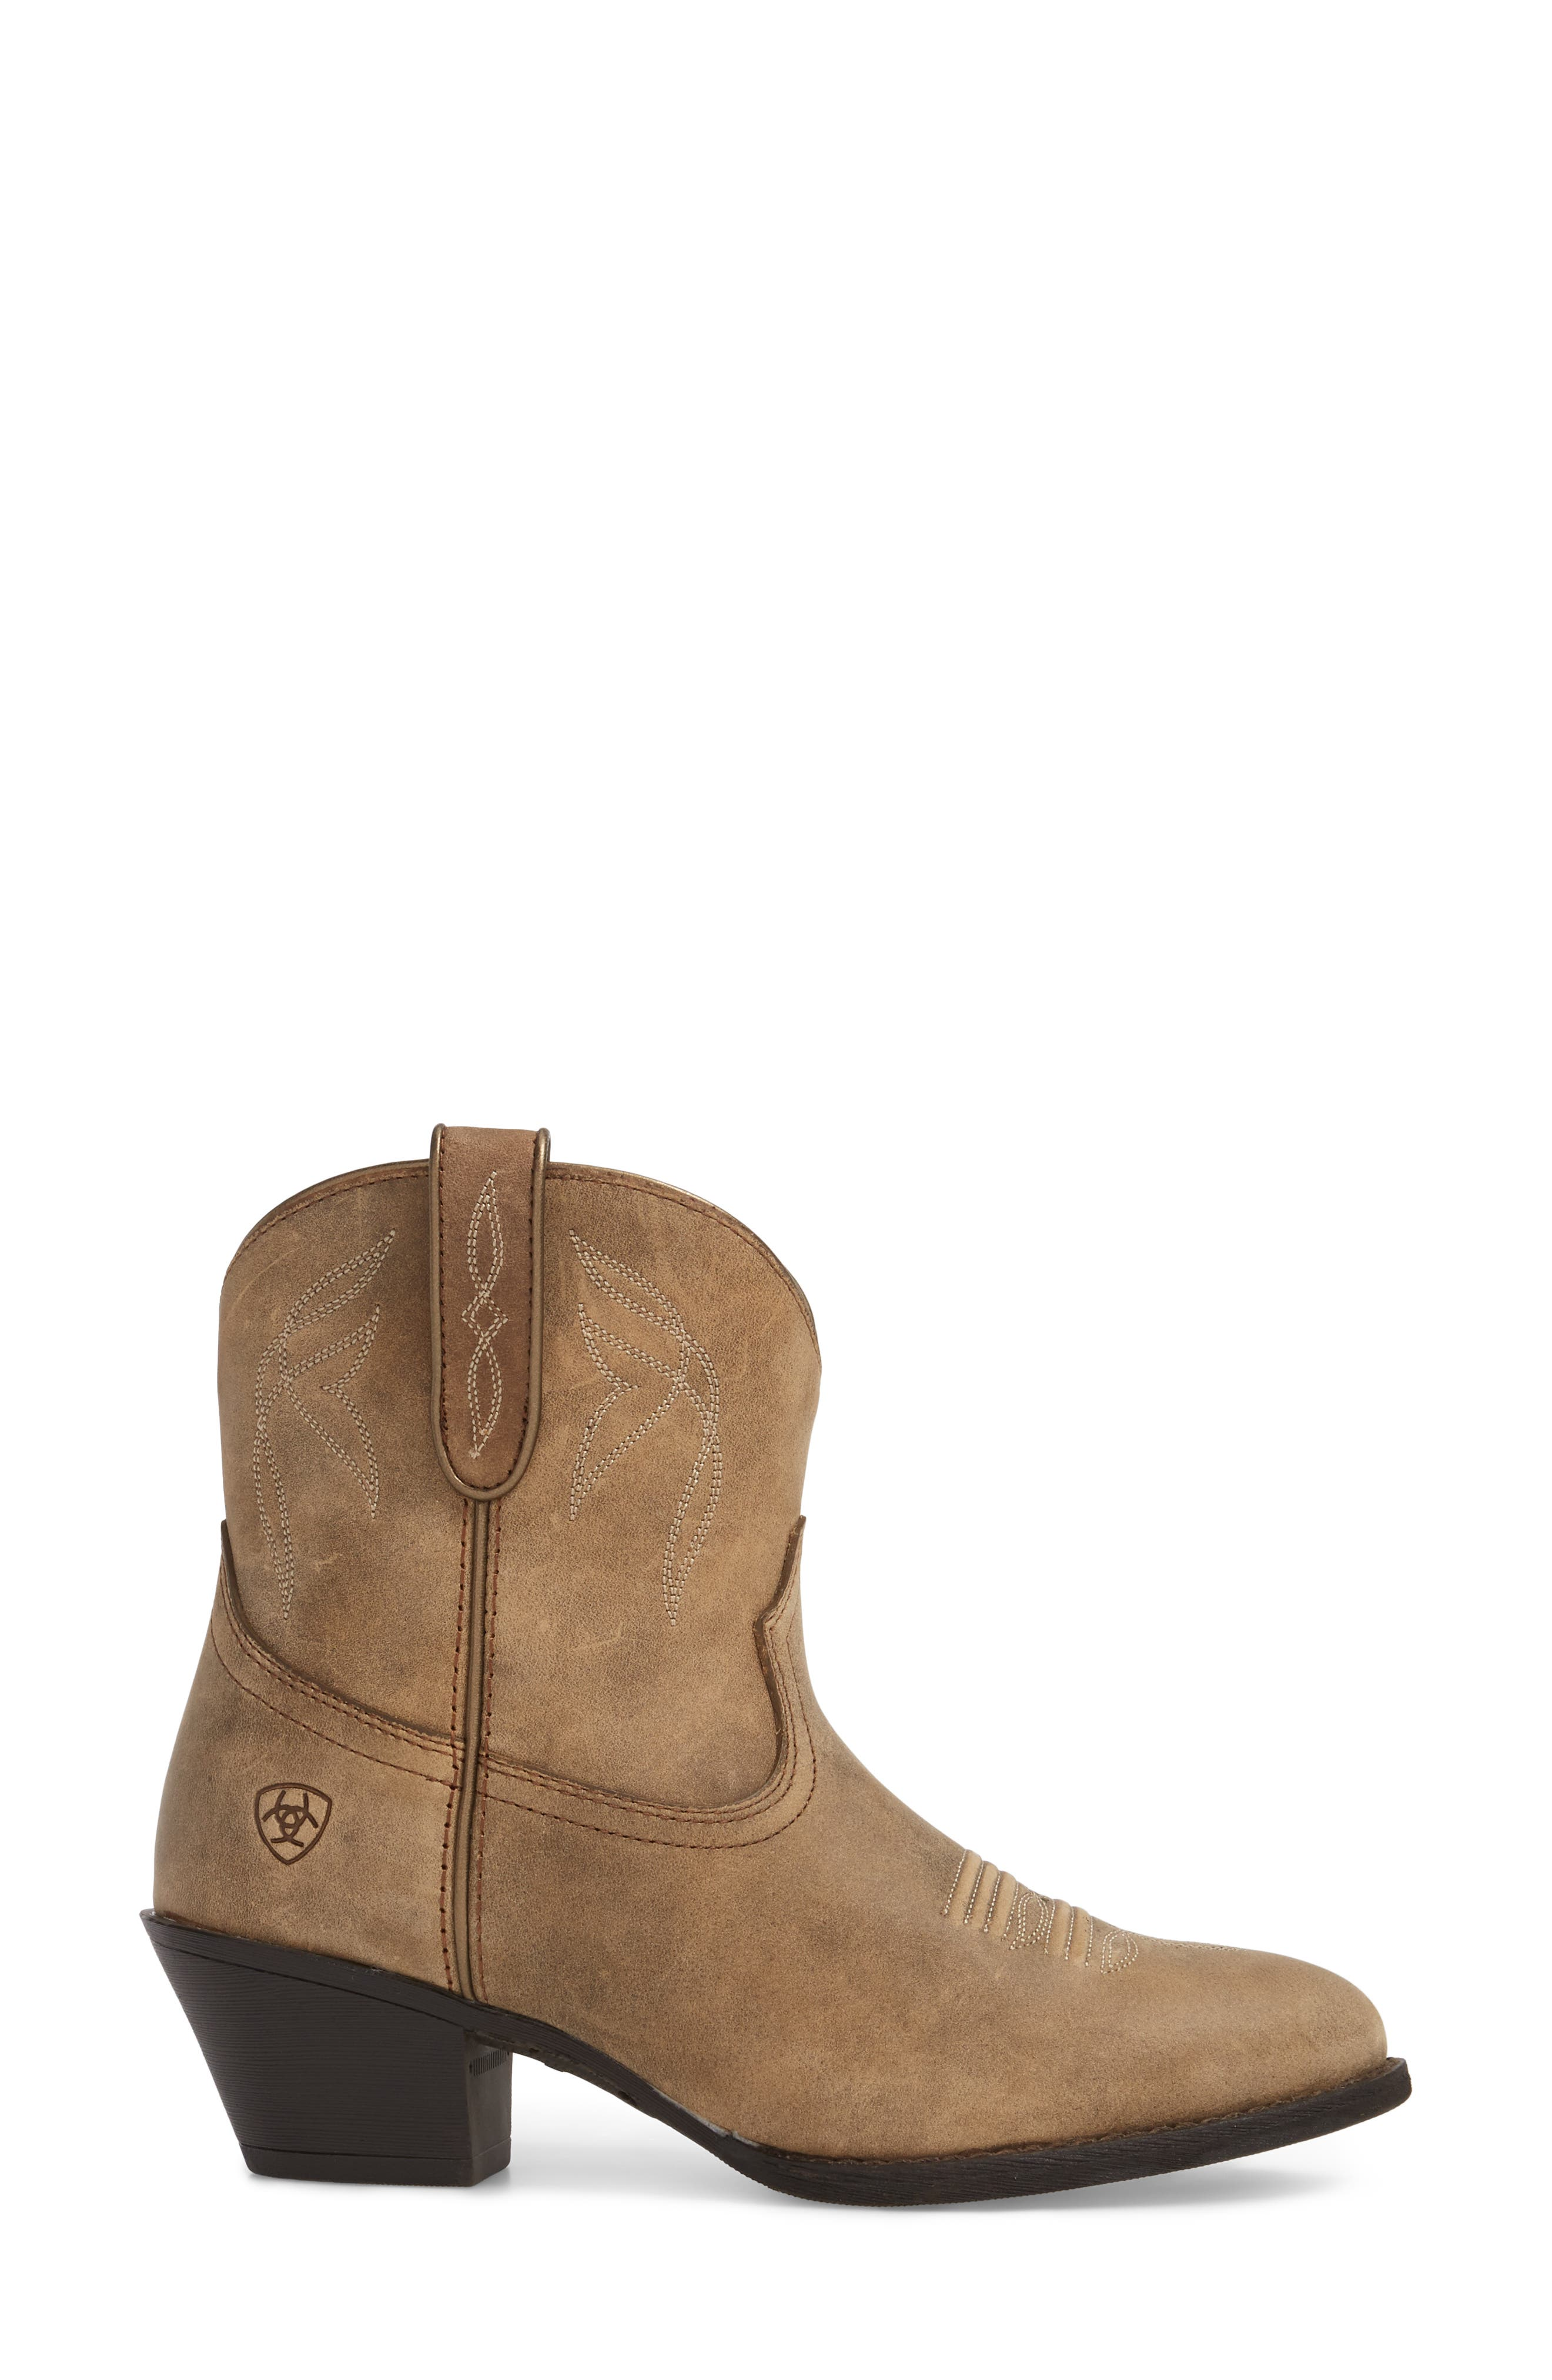 Darlin Short Western Boot,                             Alternate thumbnail 3, color,                             204